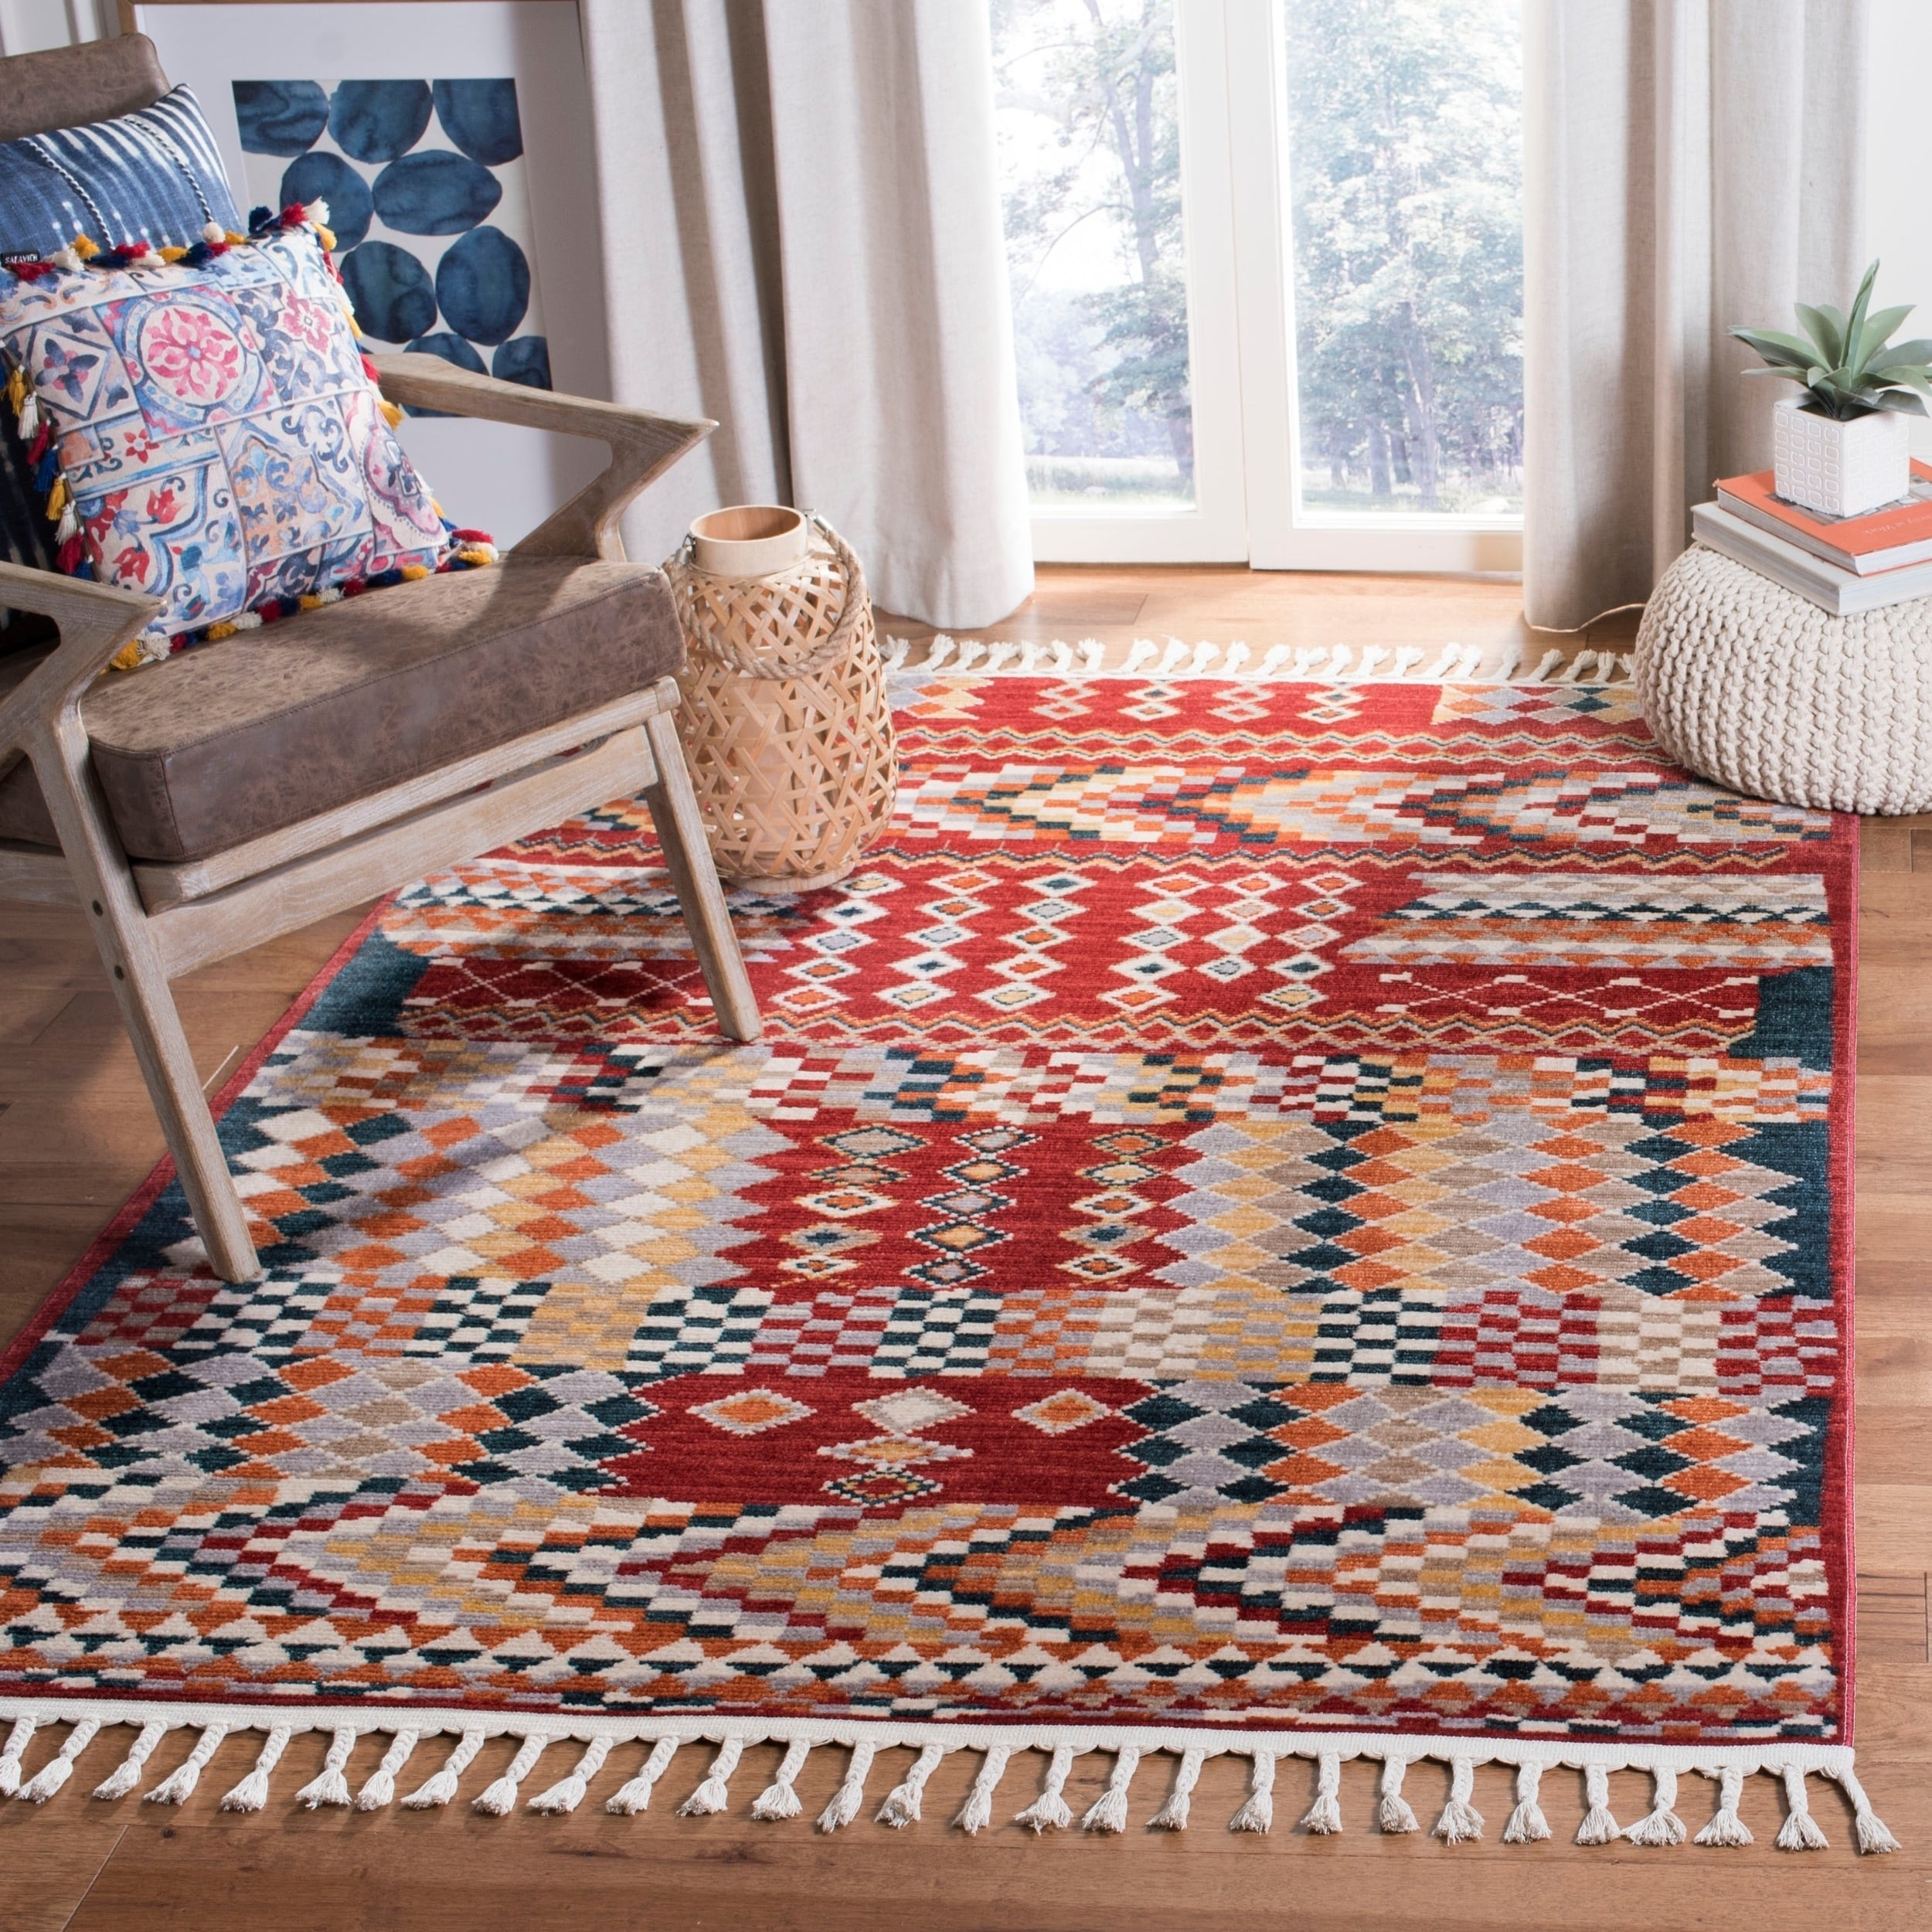 Safavieh Farmhouse Bohemian Eclectic Navy Red Polyester Tassel Area Rug 6 3 X 6 3 Square